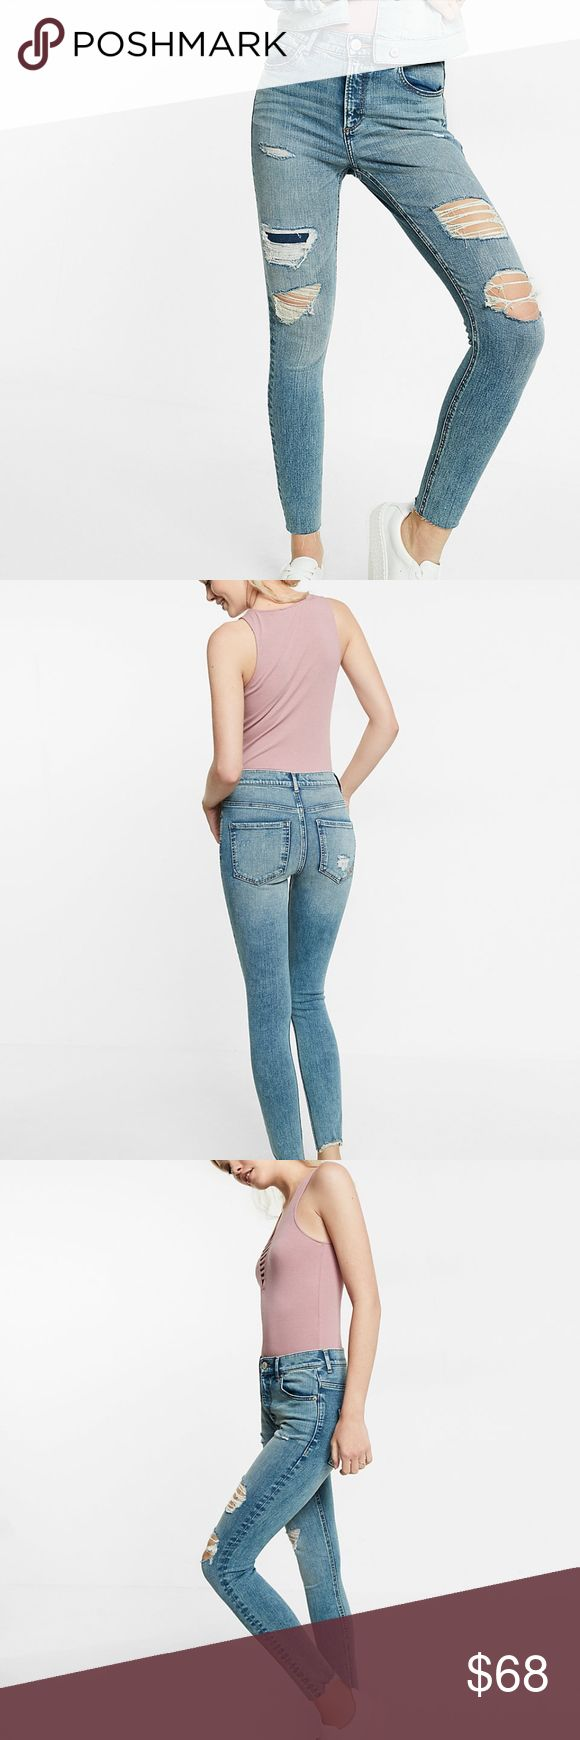 NWT Express High Waisted Destroyed Ankle Jeggings High waisted, soft and sexy, these stretch jean leggings serve up a versatile wash in a sleek, second-skin fit. Stylish destruction lends effortlessly cool style to any look, whether you're brunching with the girls or grabbing afternoon coffee.   Color: Medium Wash 19 High waisted One button closure with zip fly; Five pocket styling Distressed detailing; Raw hem; Ankle length Stretch: Just enough stretch for all-day comfort…